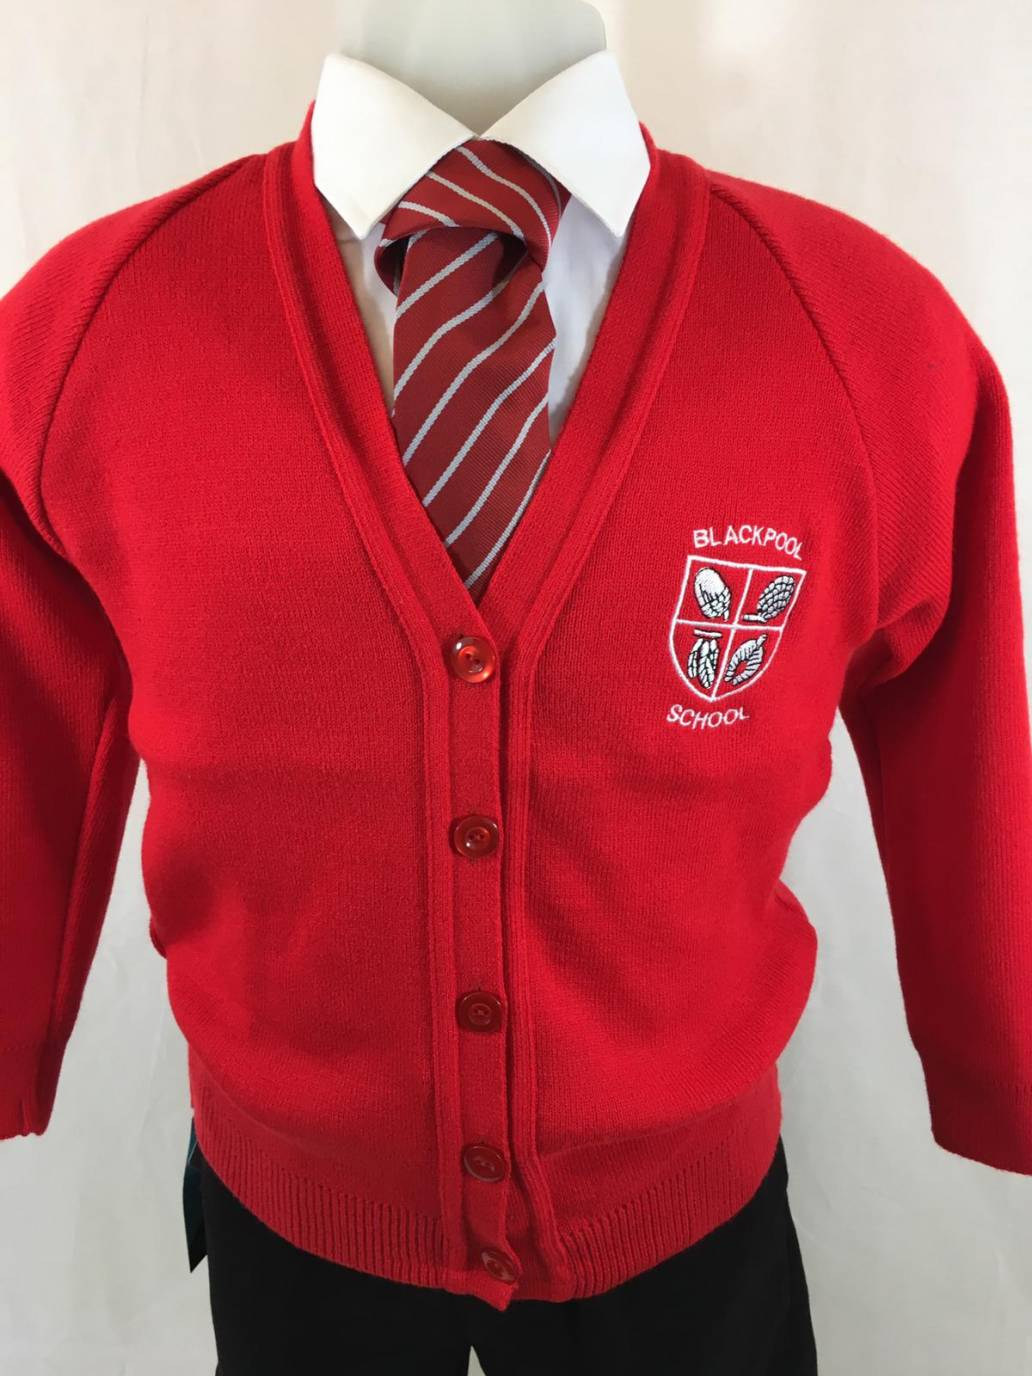 Blackpool Primary School Cardigan